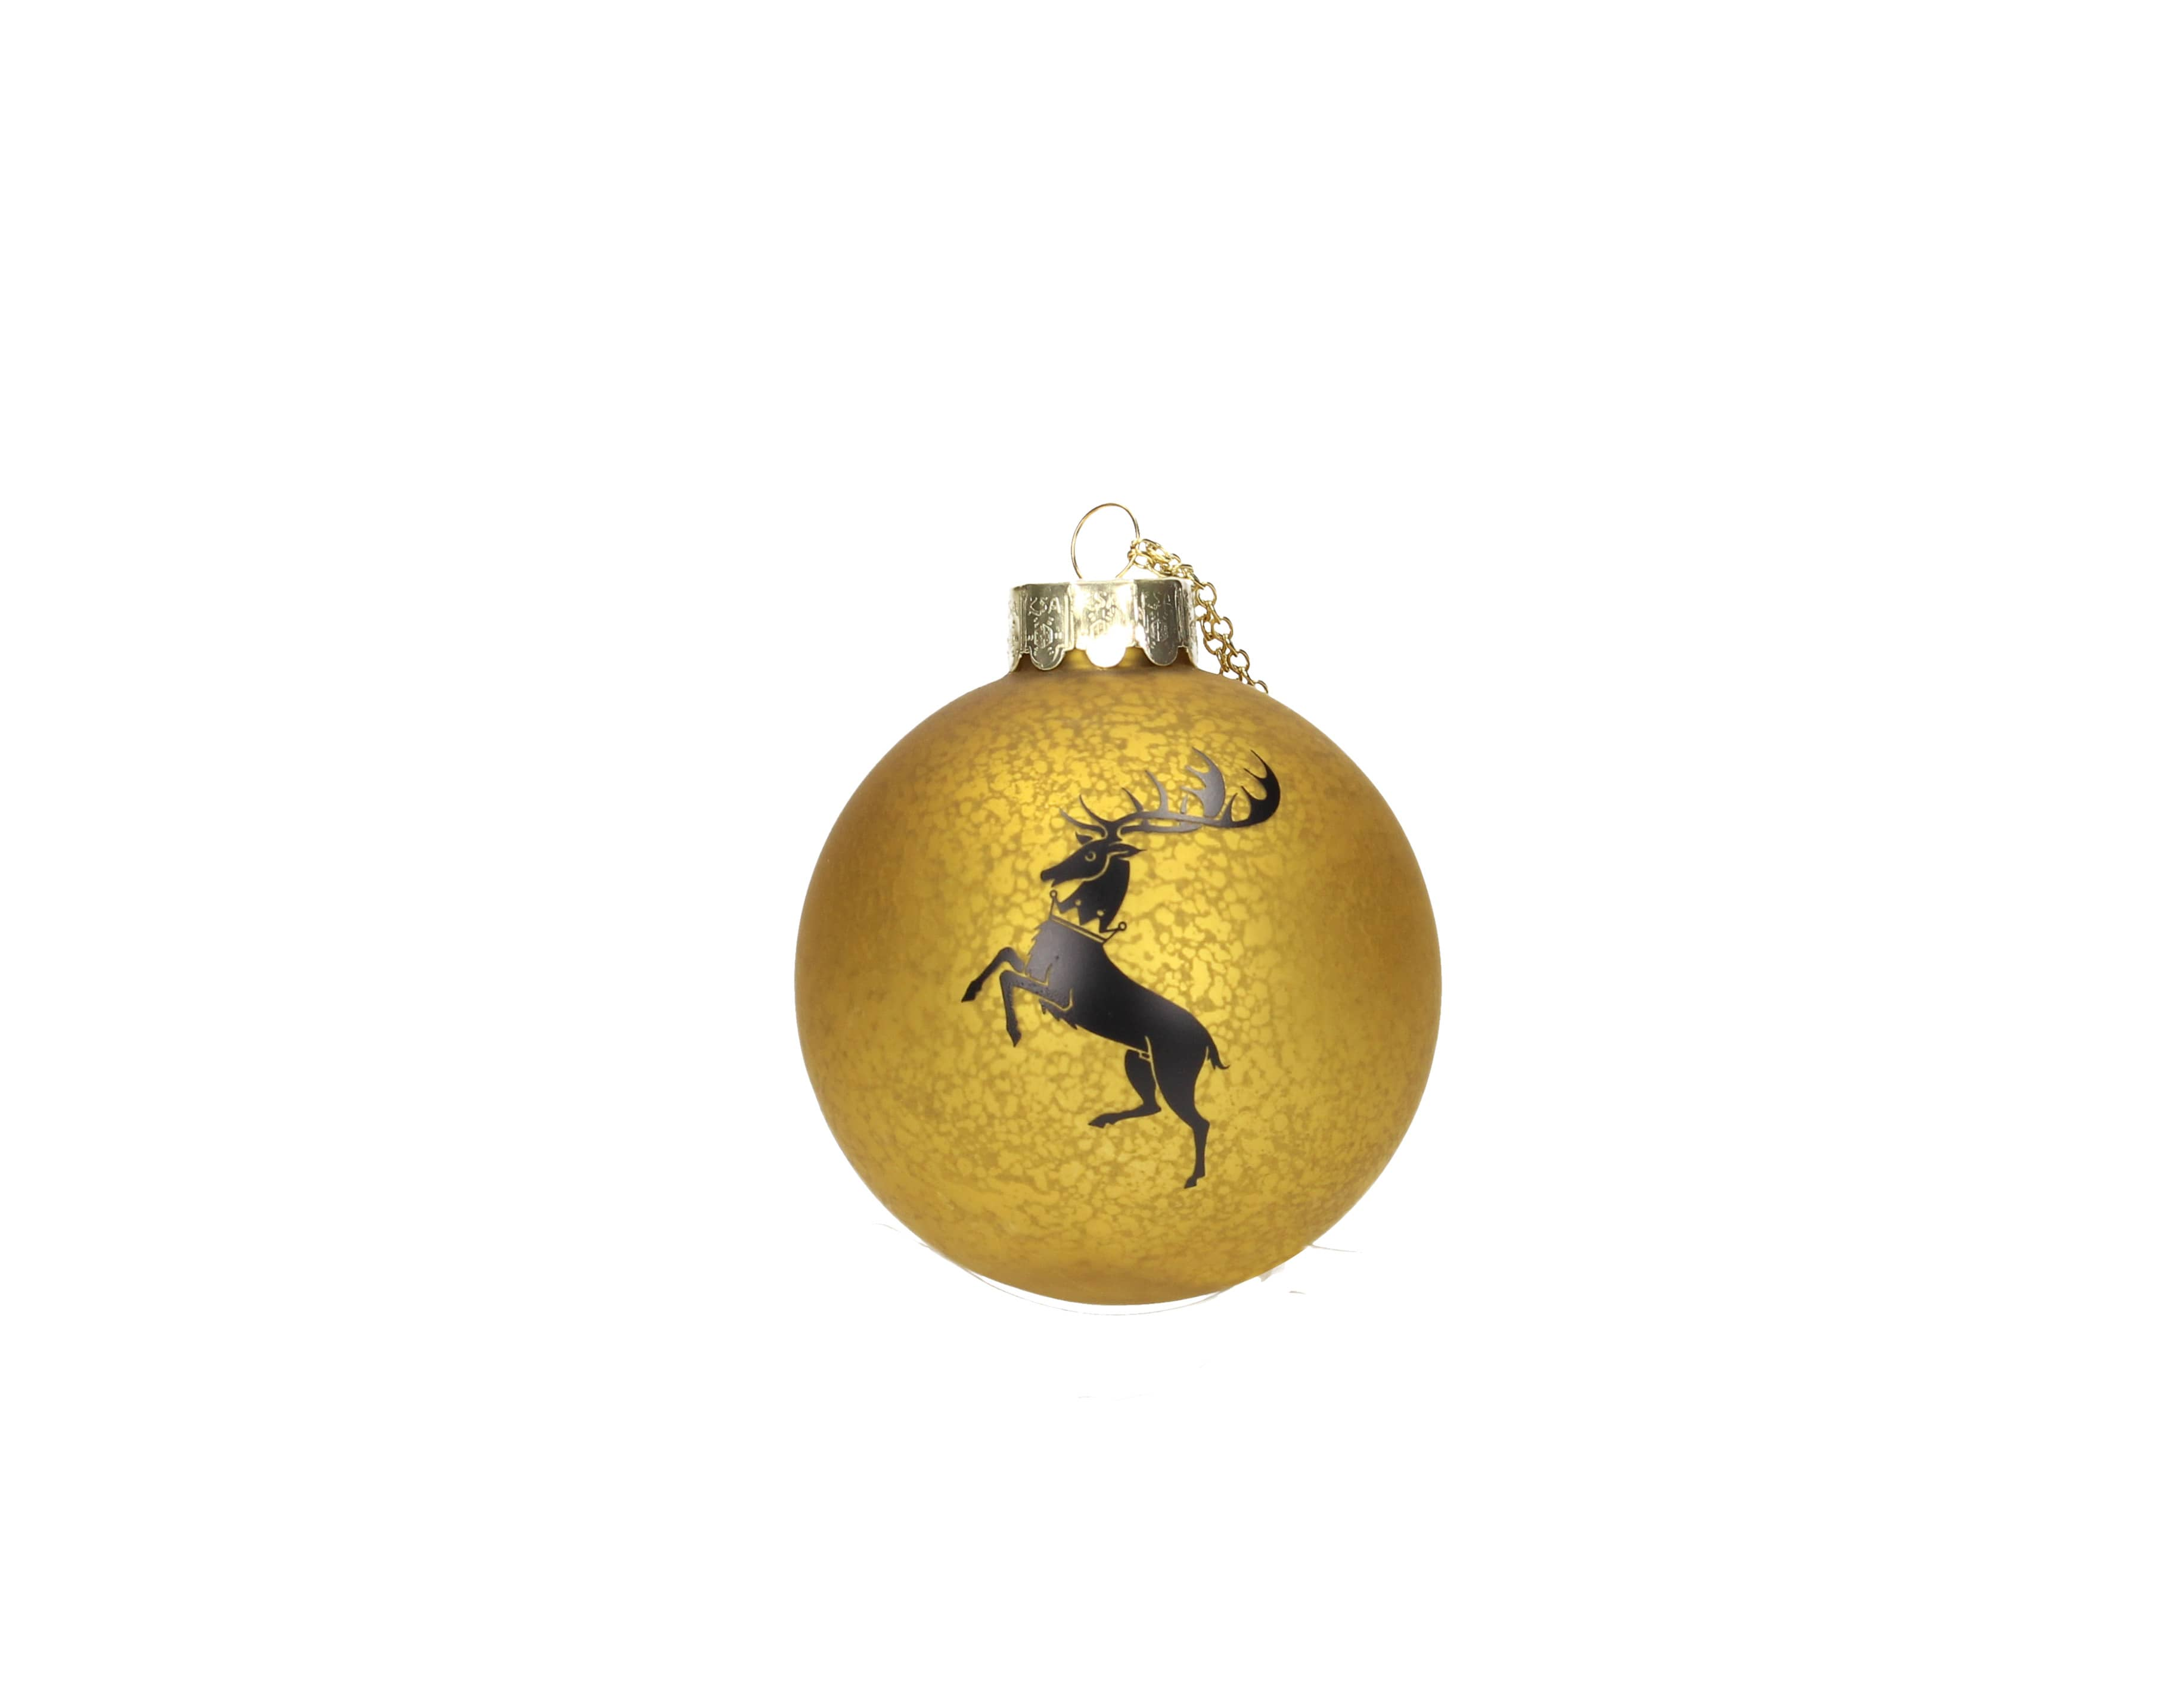 BARATHEON BOLA NAVIDAD GAME OF THRONES